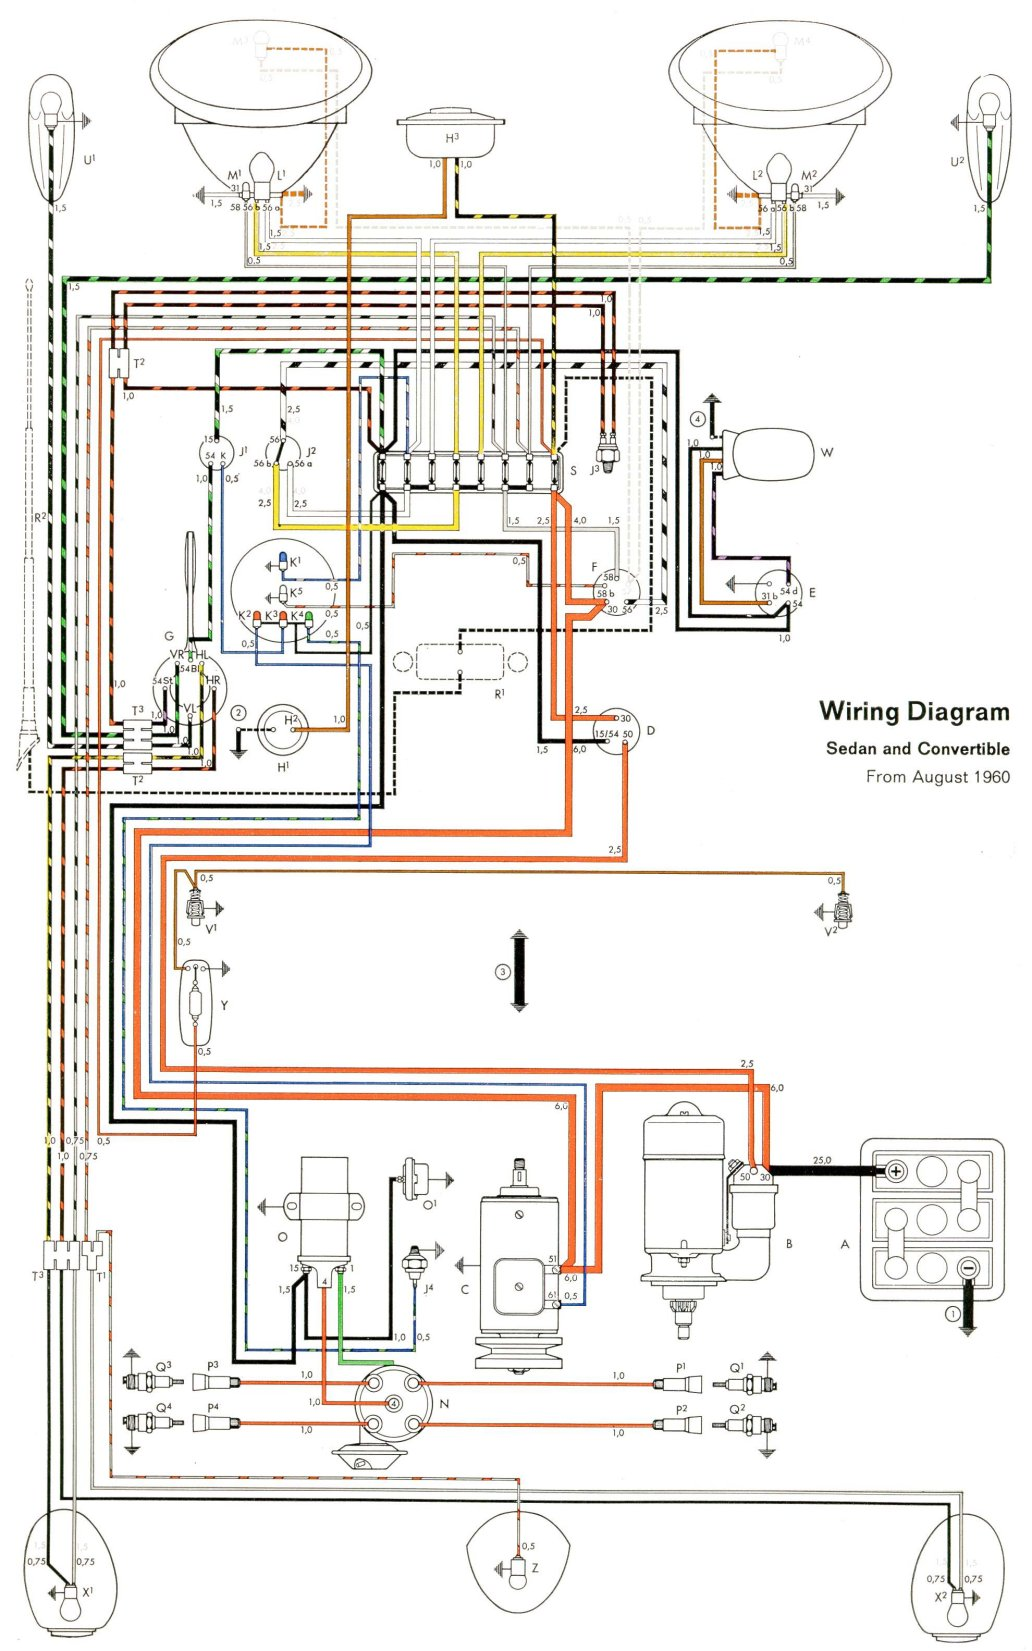 bug_61 european wiring diagram hyundai sonata wiring diagram \u2022 free vw wiring diagram symbols at readyjetset.co